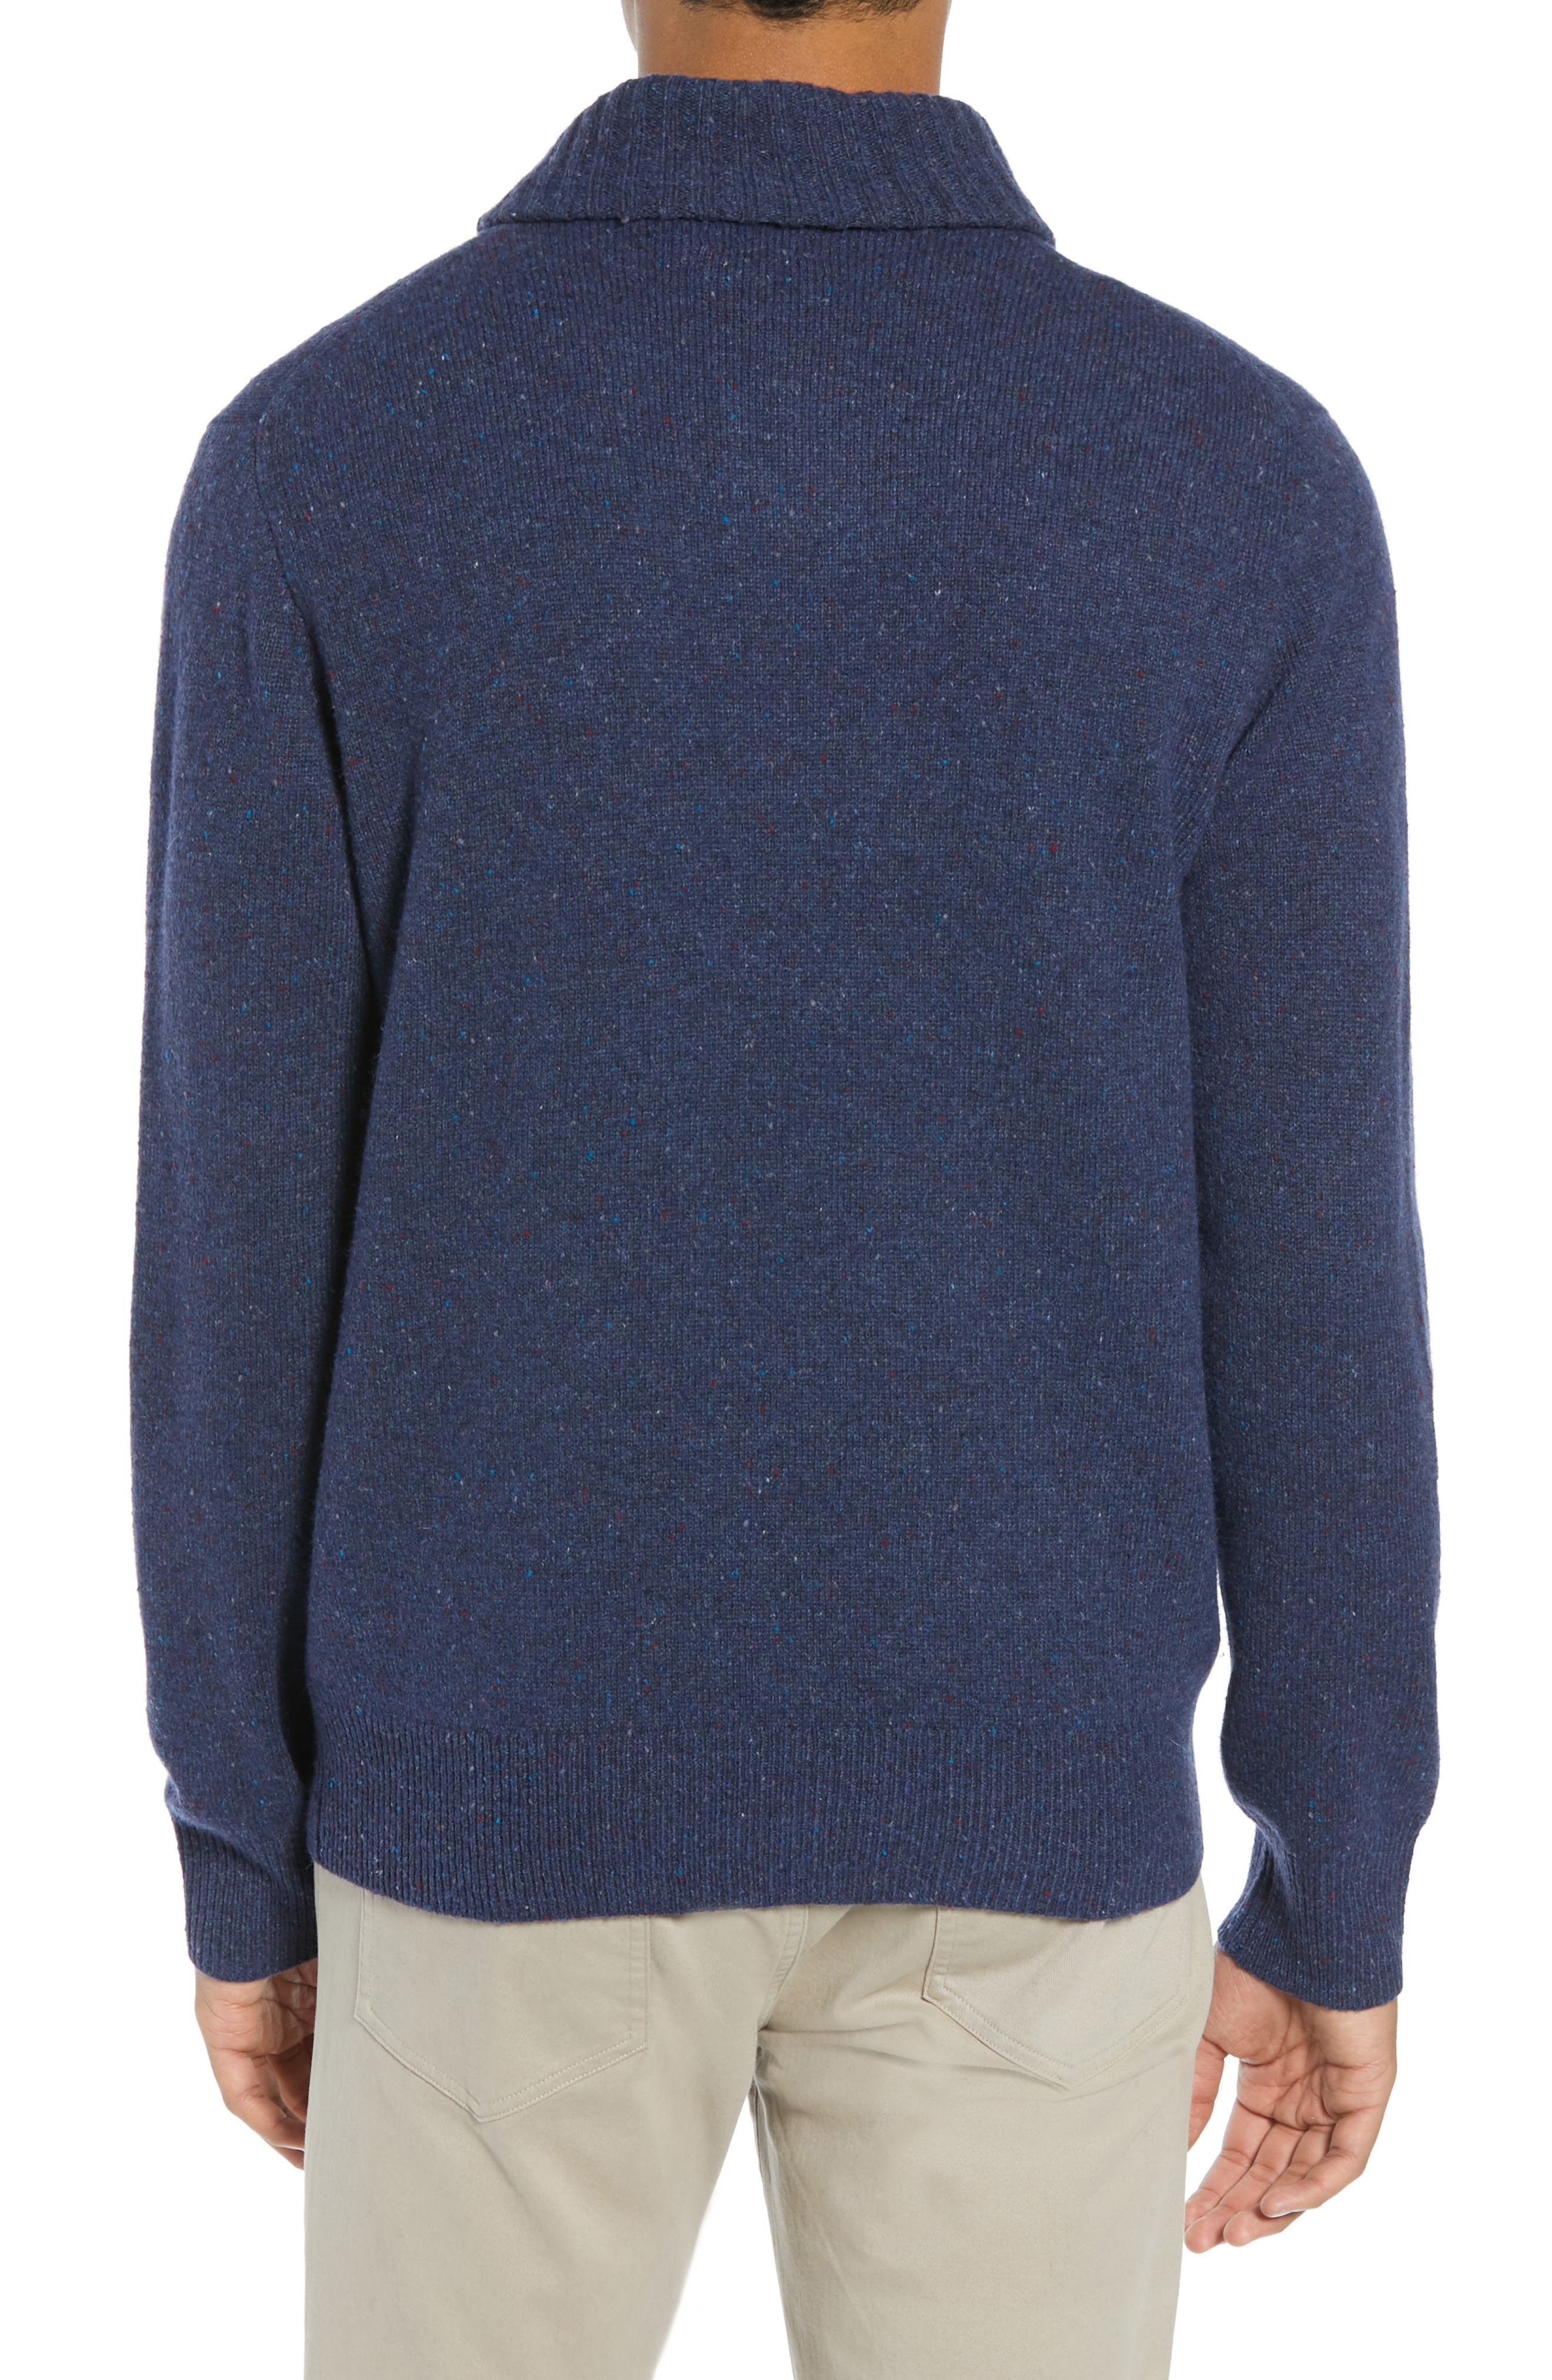 Rugged Merino Wool Blend Shawl Collar Pullover Sweater,                             Alternate thumbnail 2, color,                             NAVY DONEGAL